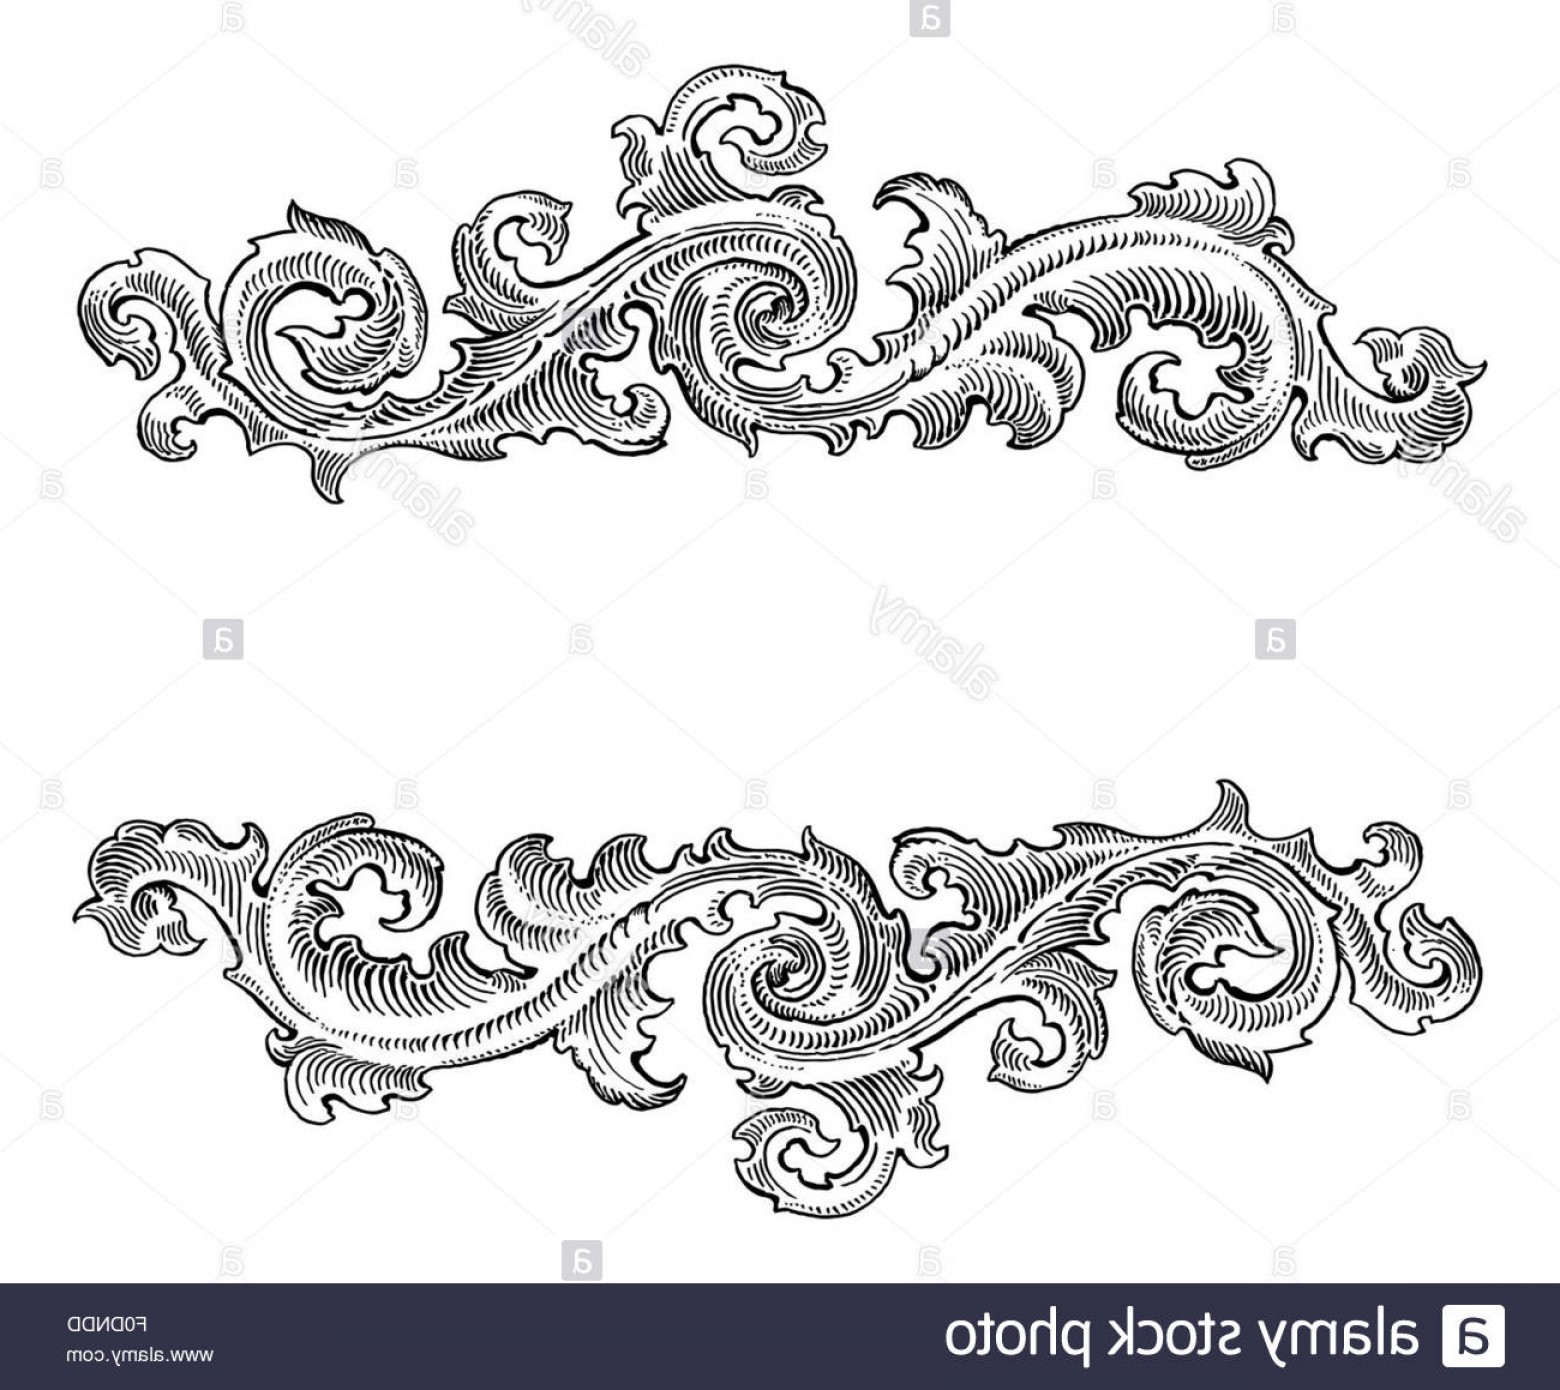 Floral Vector Calligraphy: Stock Photo Beautiful Baroque Style Decorative Calligraphy Floral Vector Ornament